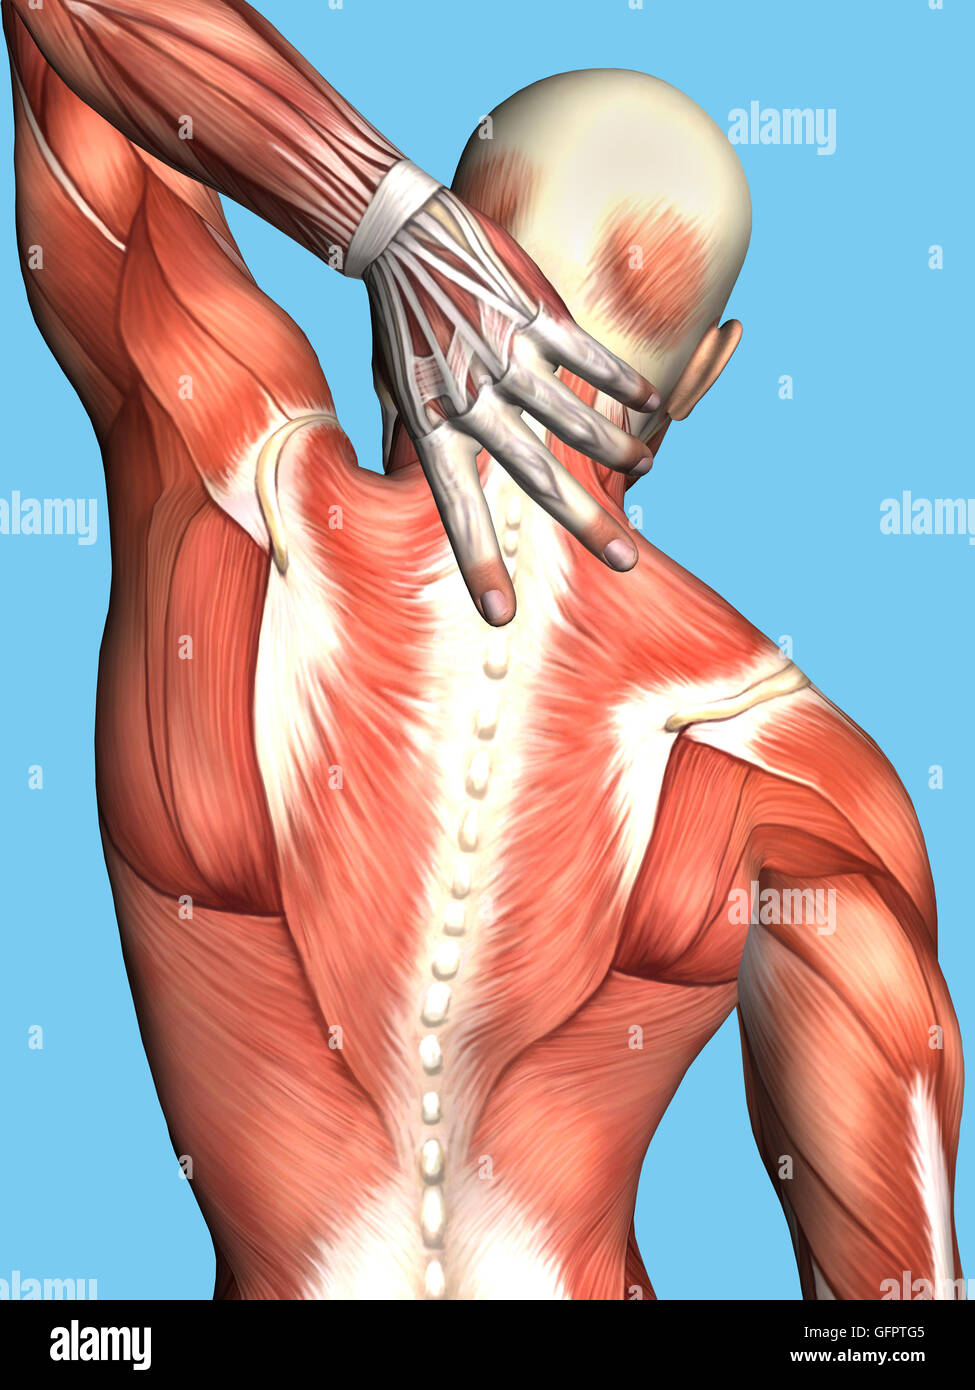 Anatomy of Male With Upper Back Pain: Featuring male figure reaching ...